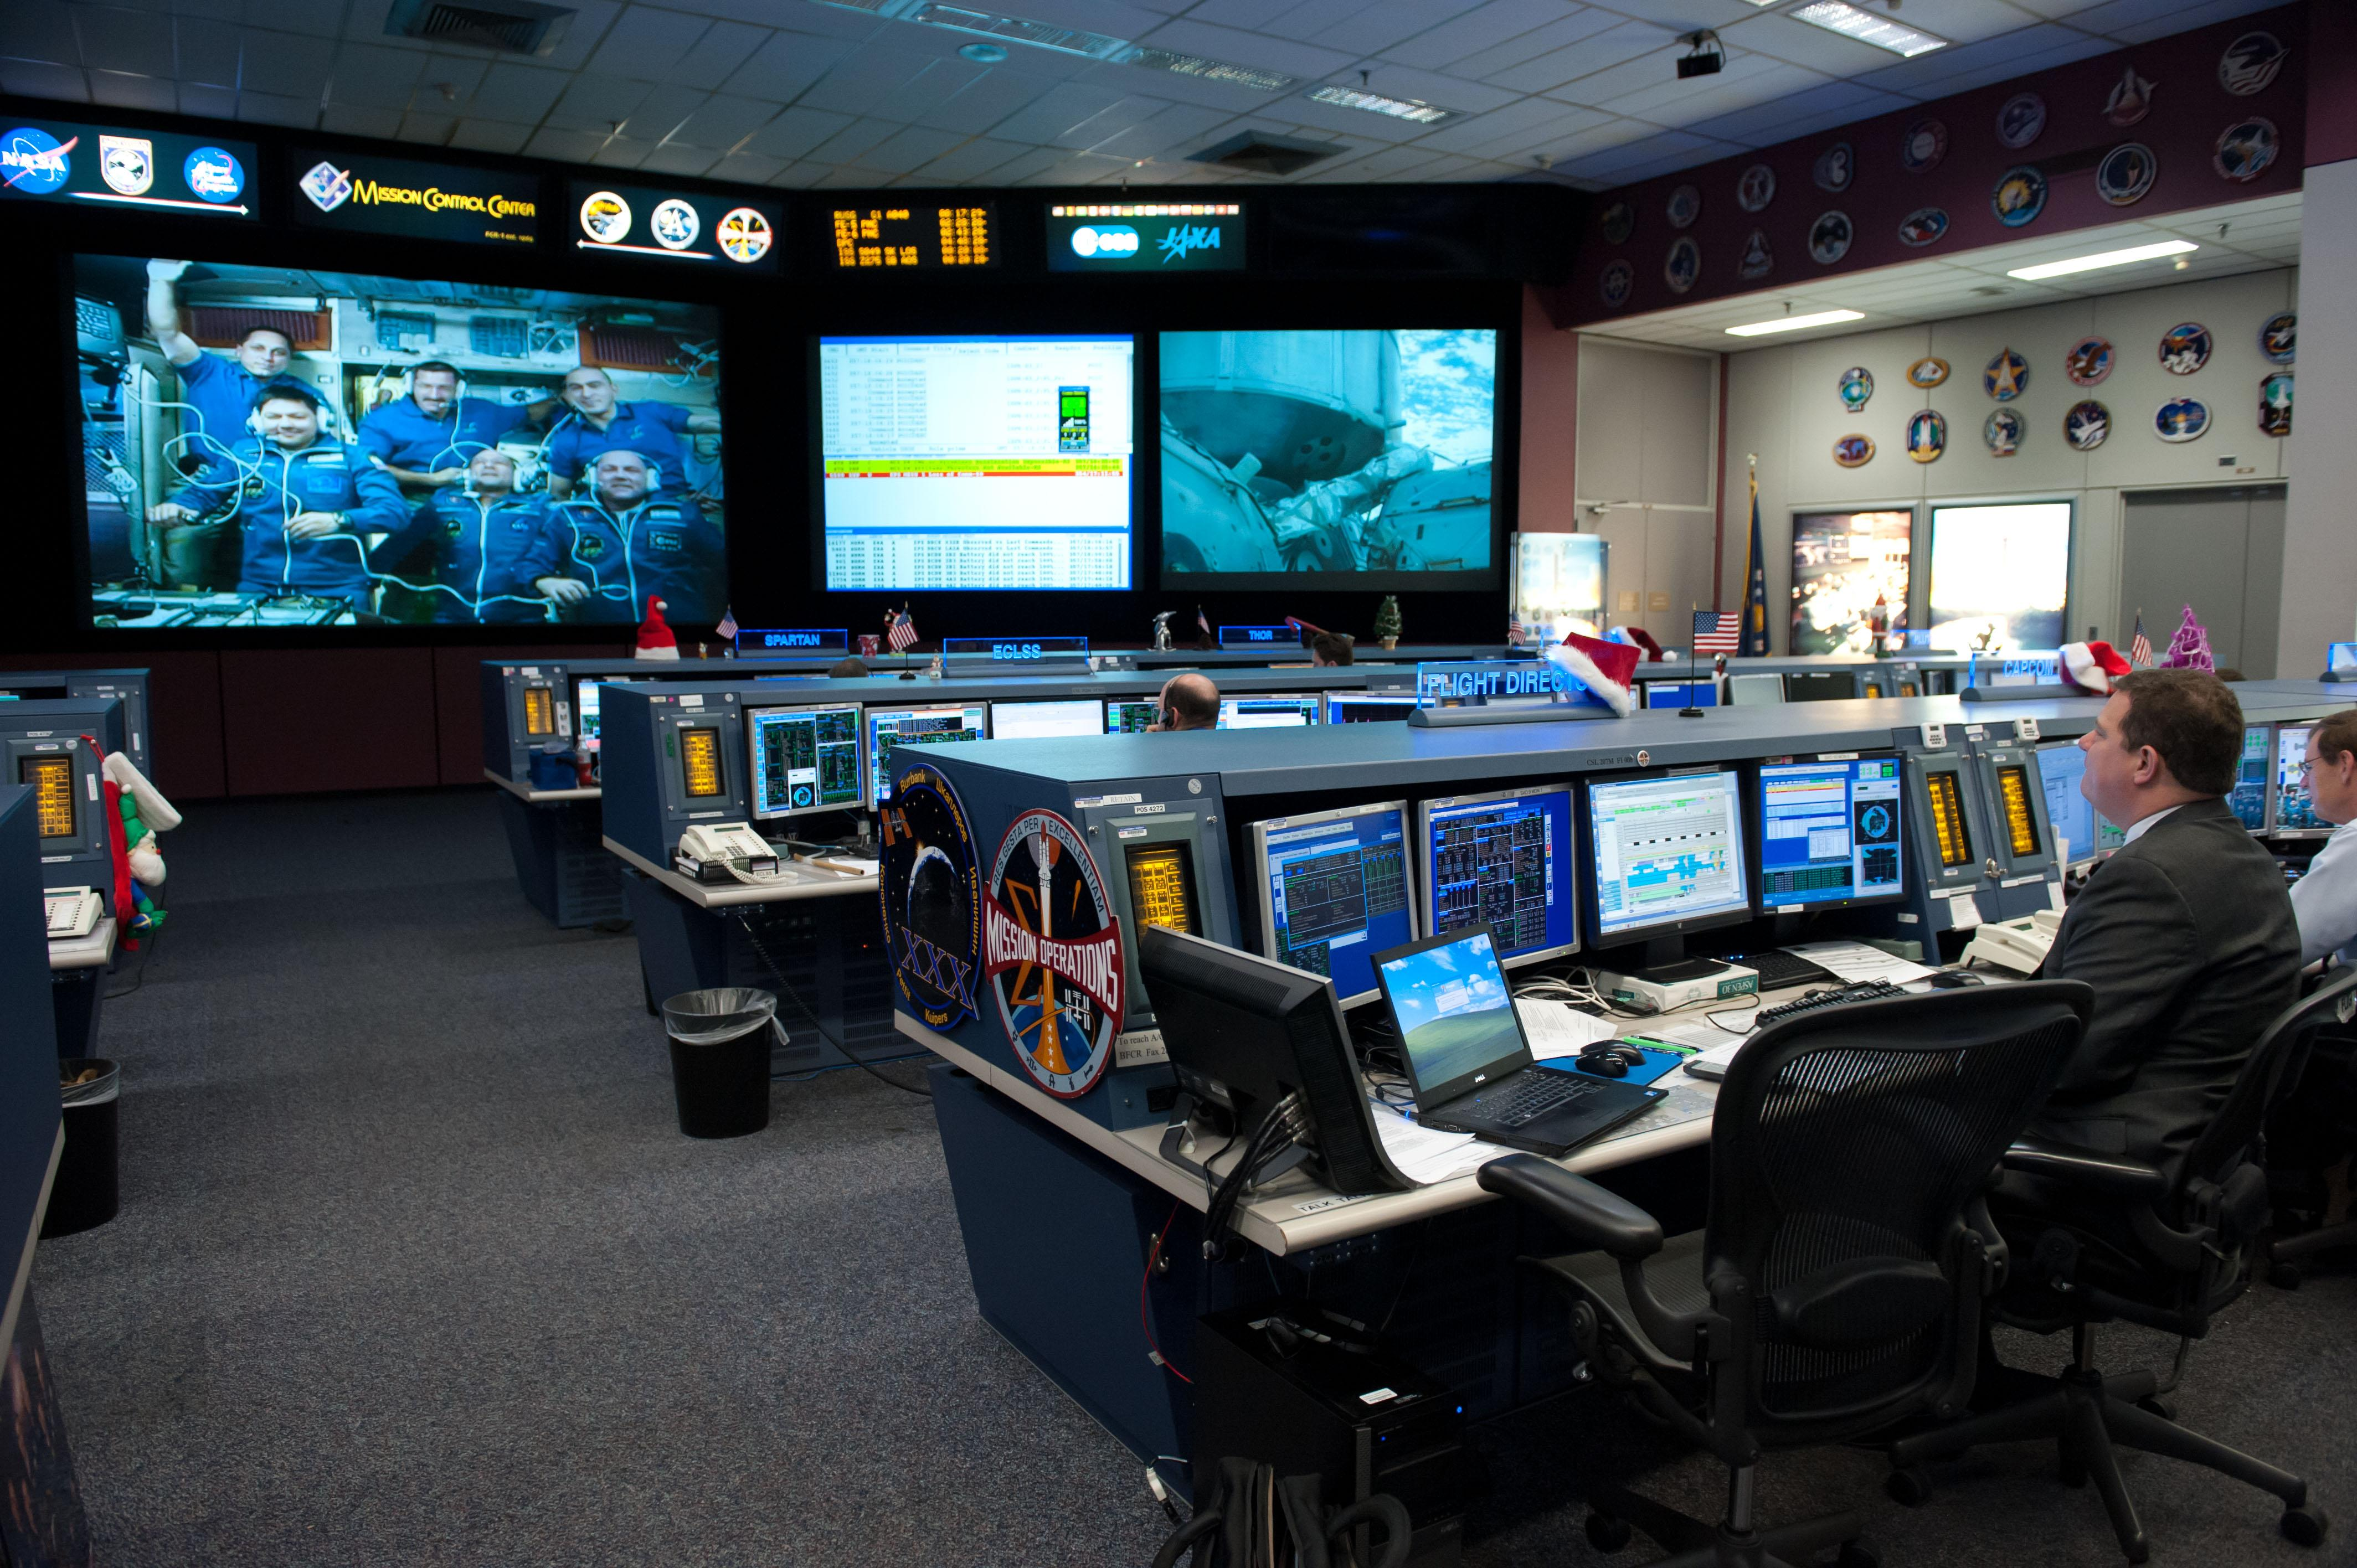 Control station space engineers download